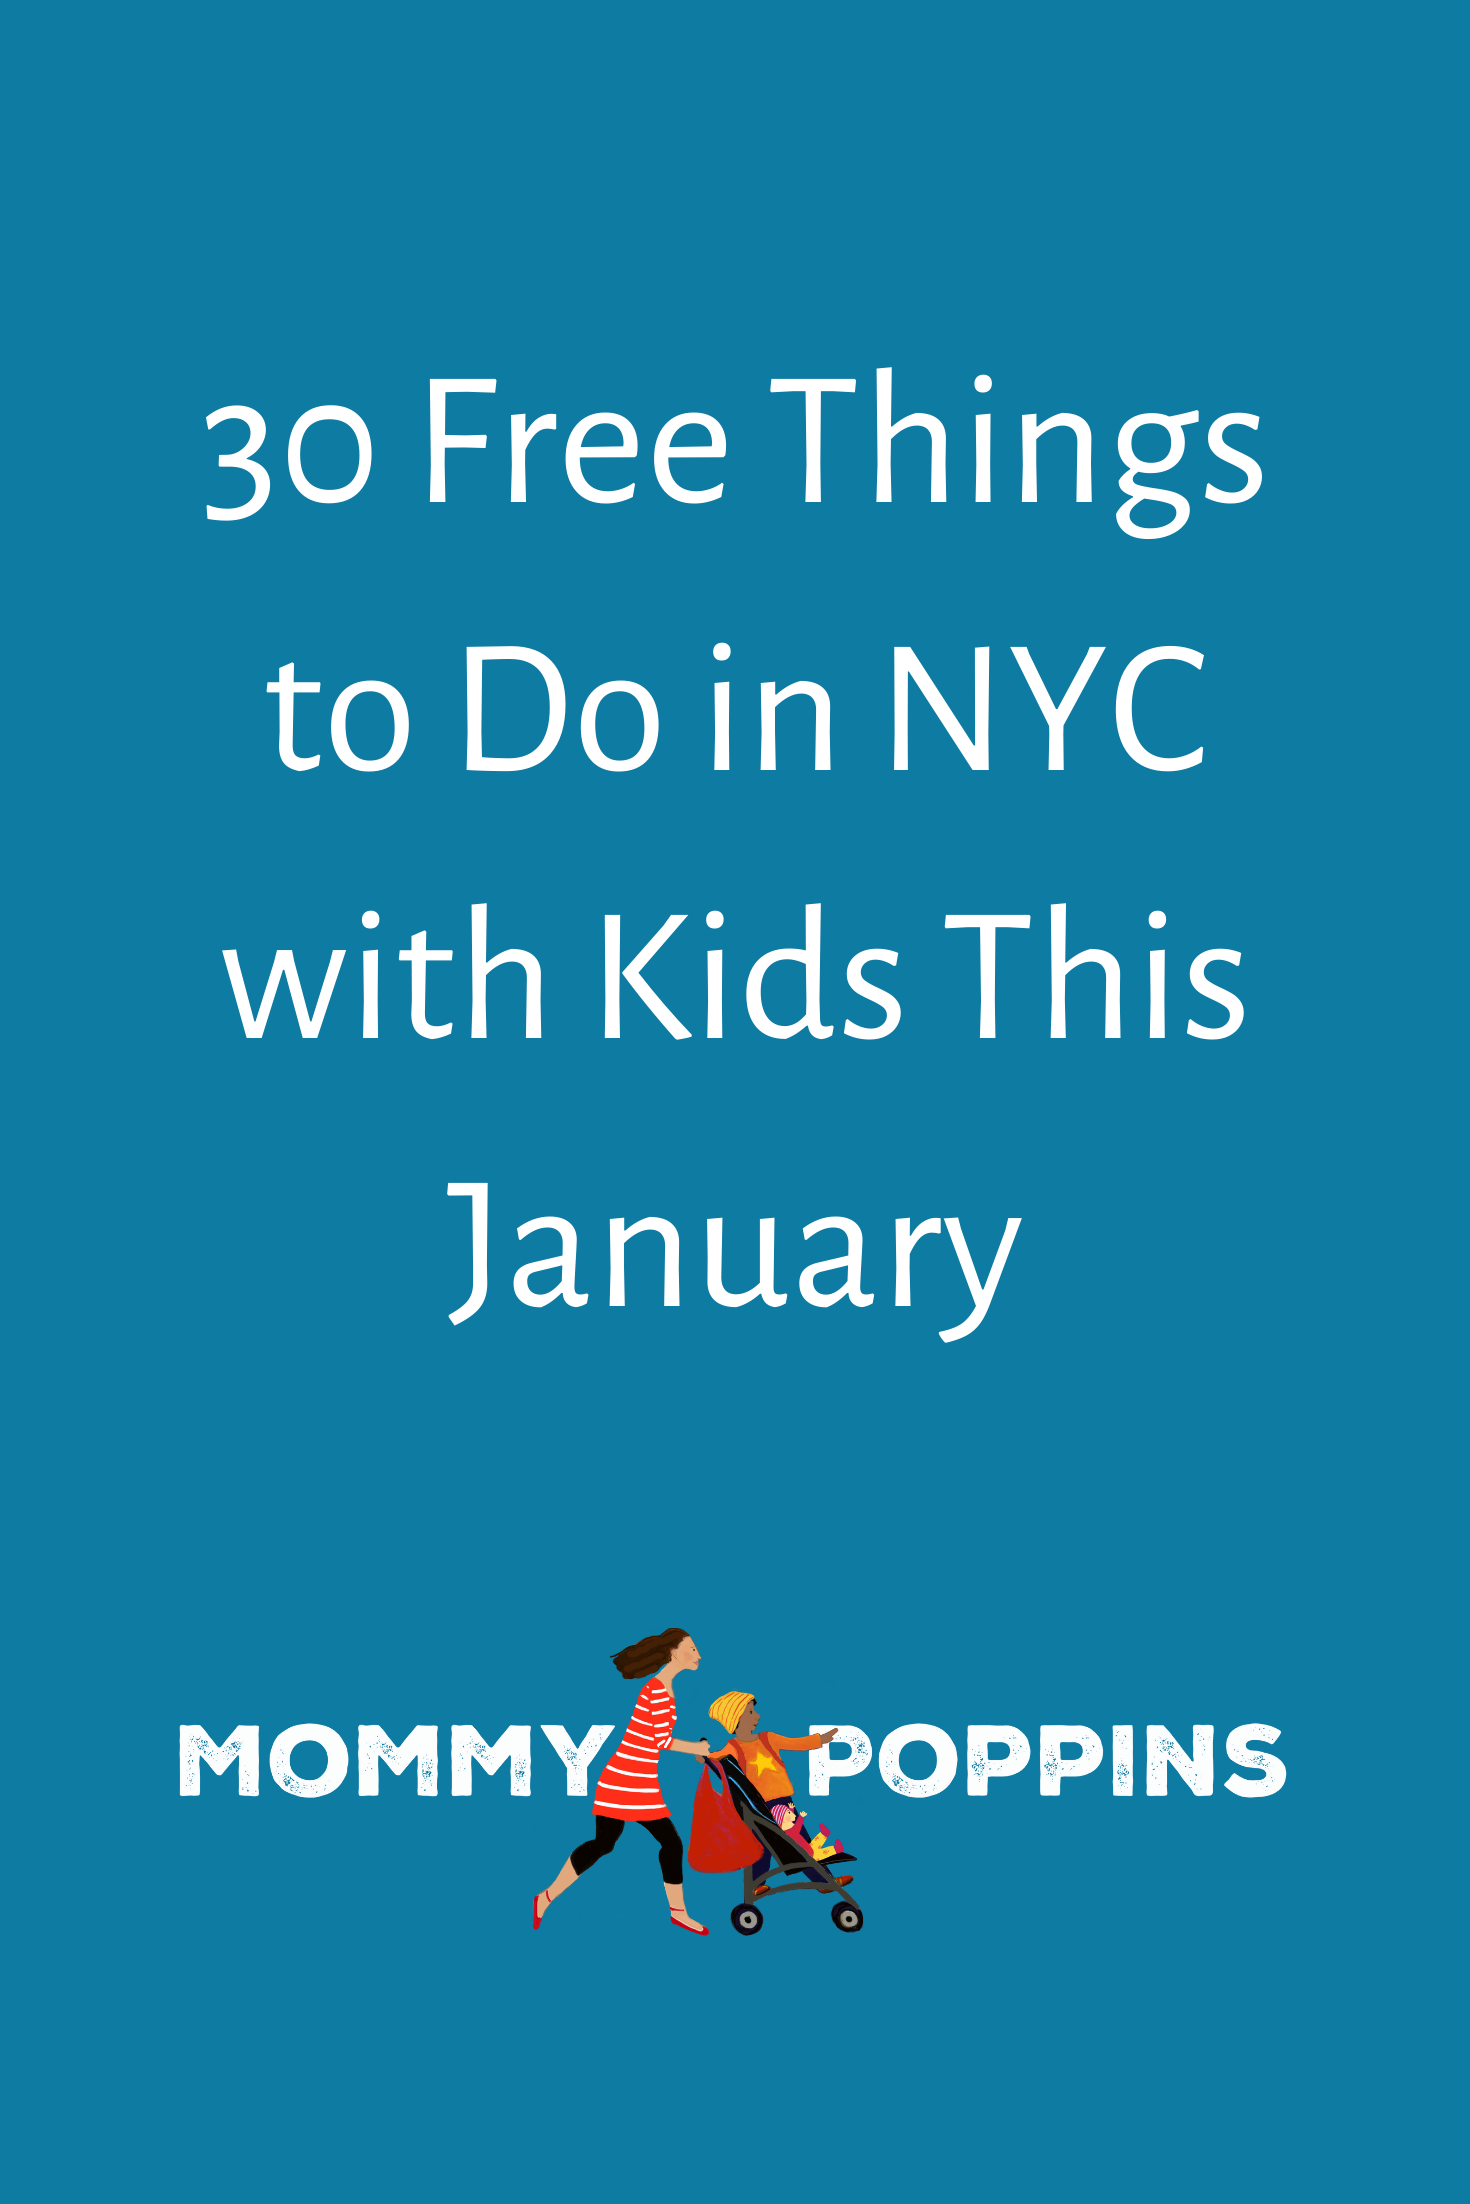 Free Things To Do In Nyc At Christmas 2020 30 Free Things to Do in NYC with Kids in January 2020 in 2020